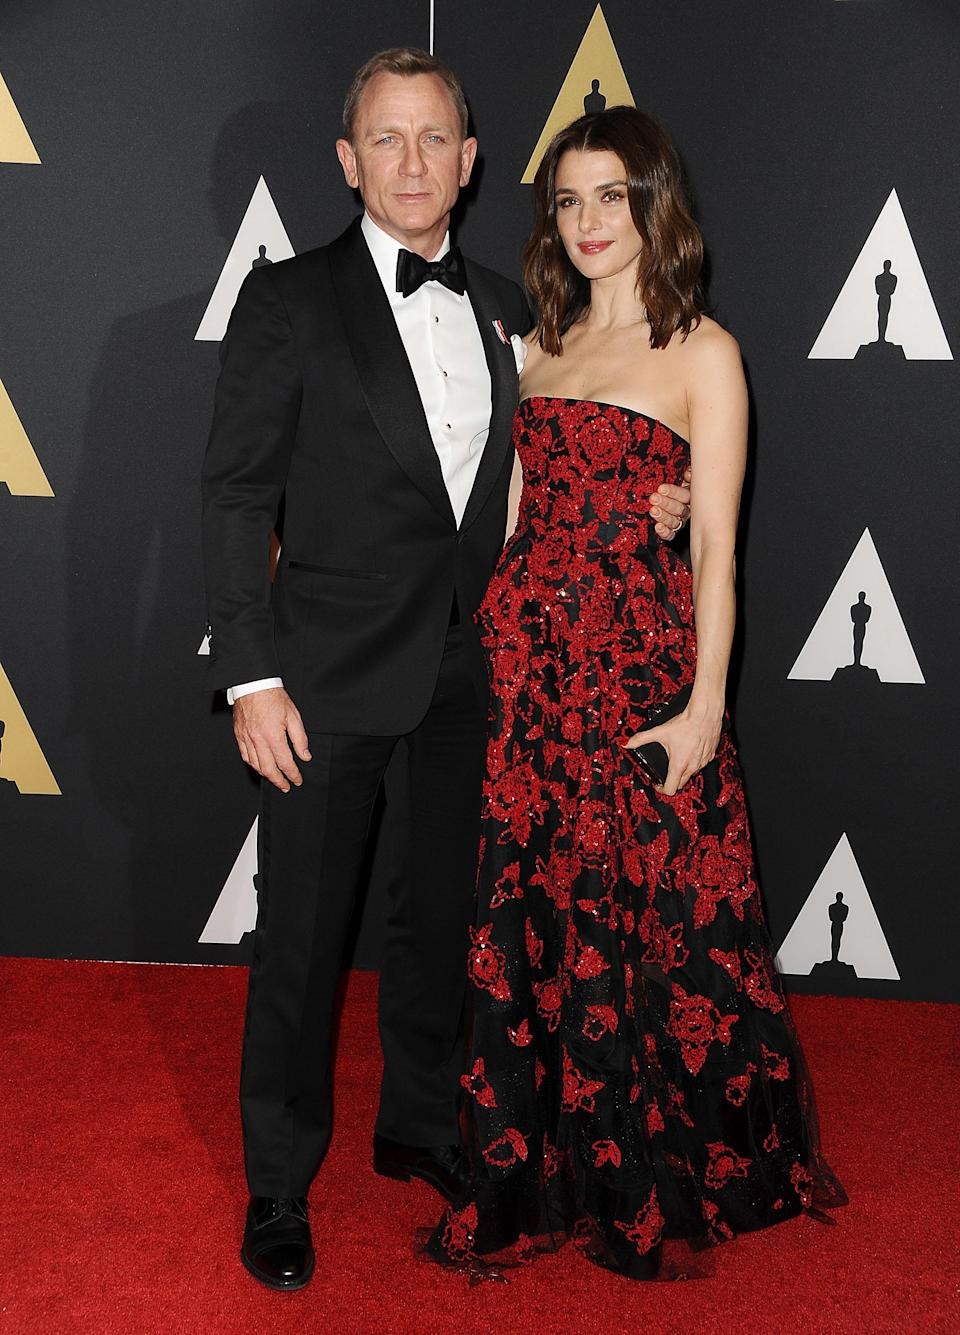 Rachel Weisz, 48, is expecting her first child with husband Daniel Craig, 50, and people can't get over her age. (Photo: Getty Images)